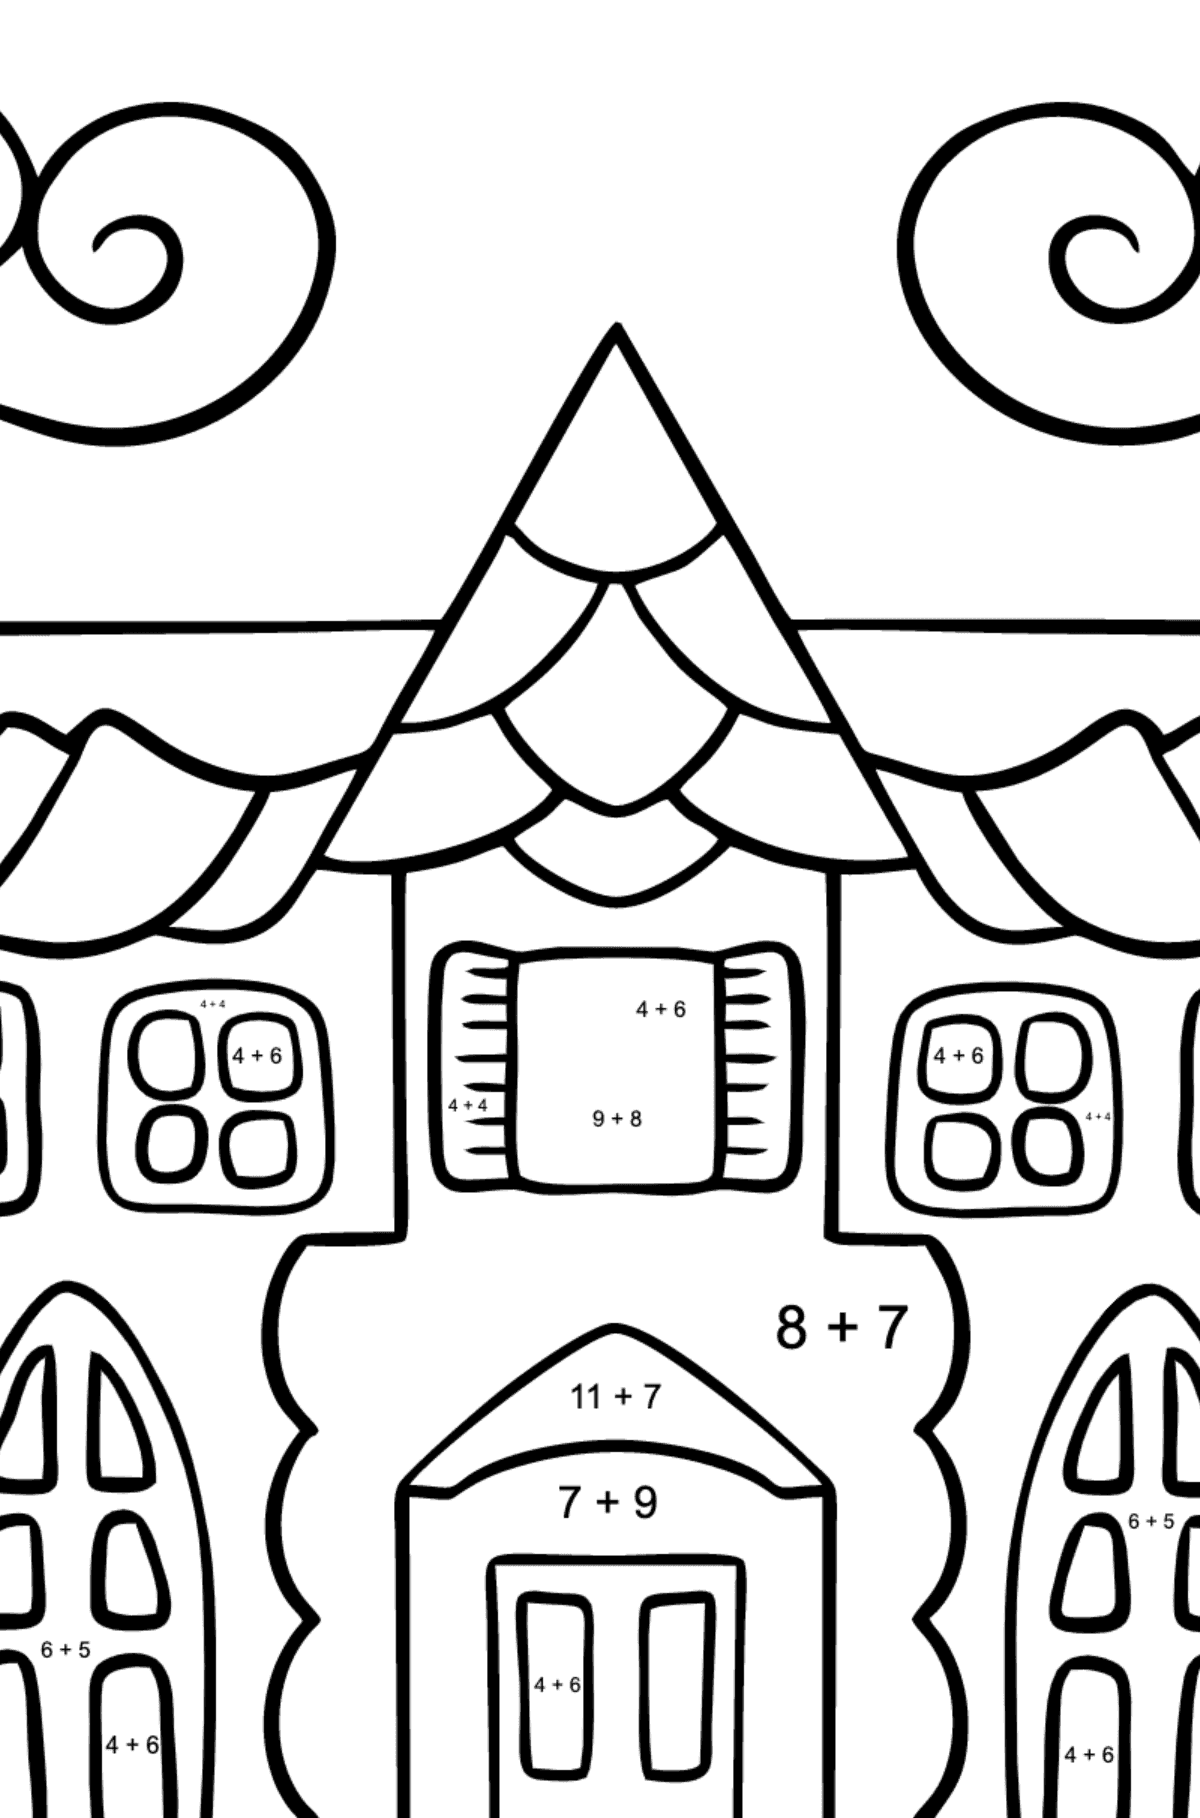 Coloring Page - A House in an Enchanted Kingdom for Kids  - Color by Number Addition